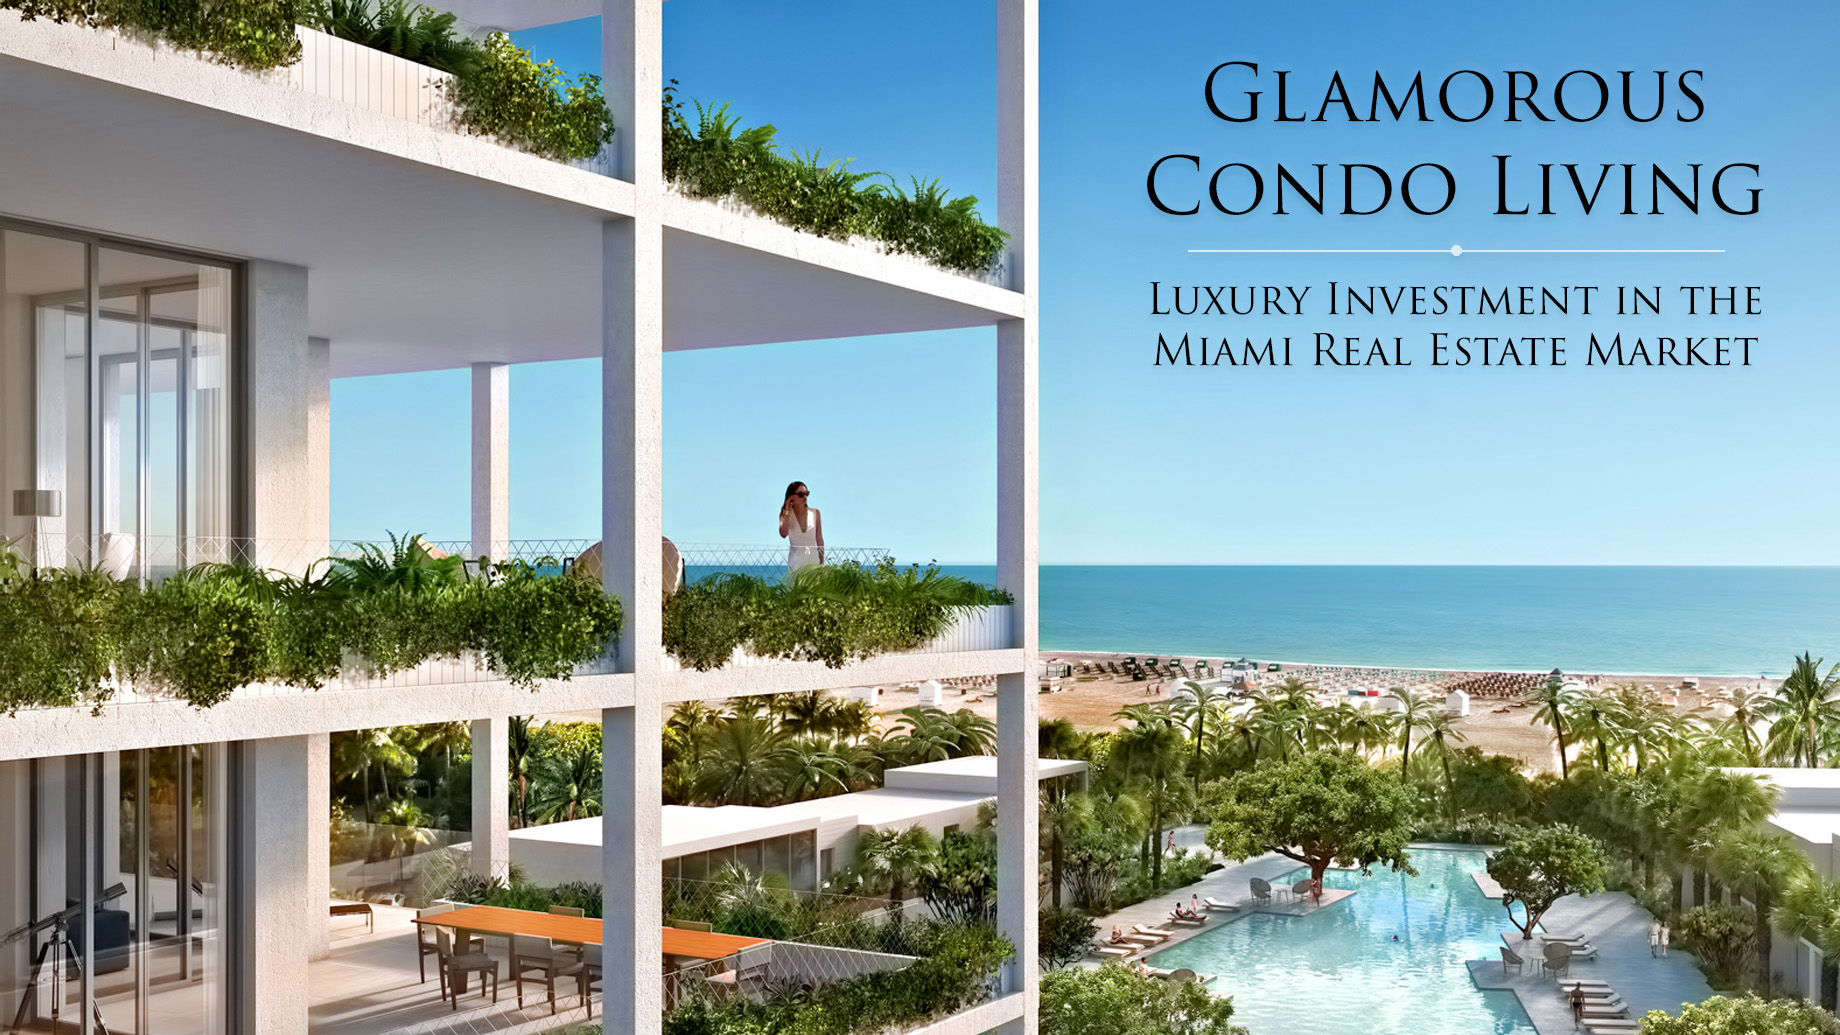 Glamorous Condo Living - Luxury Investment in the Miami Real Estate Market